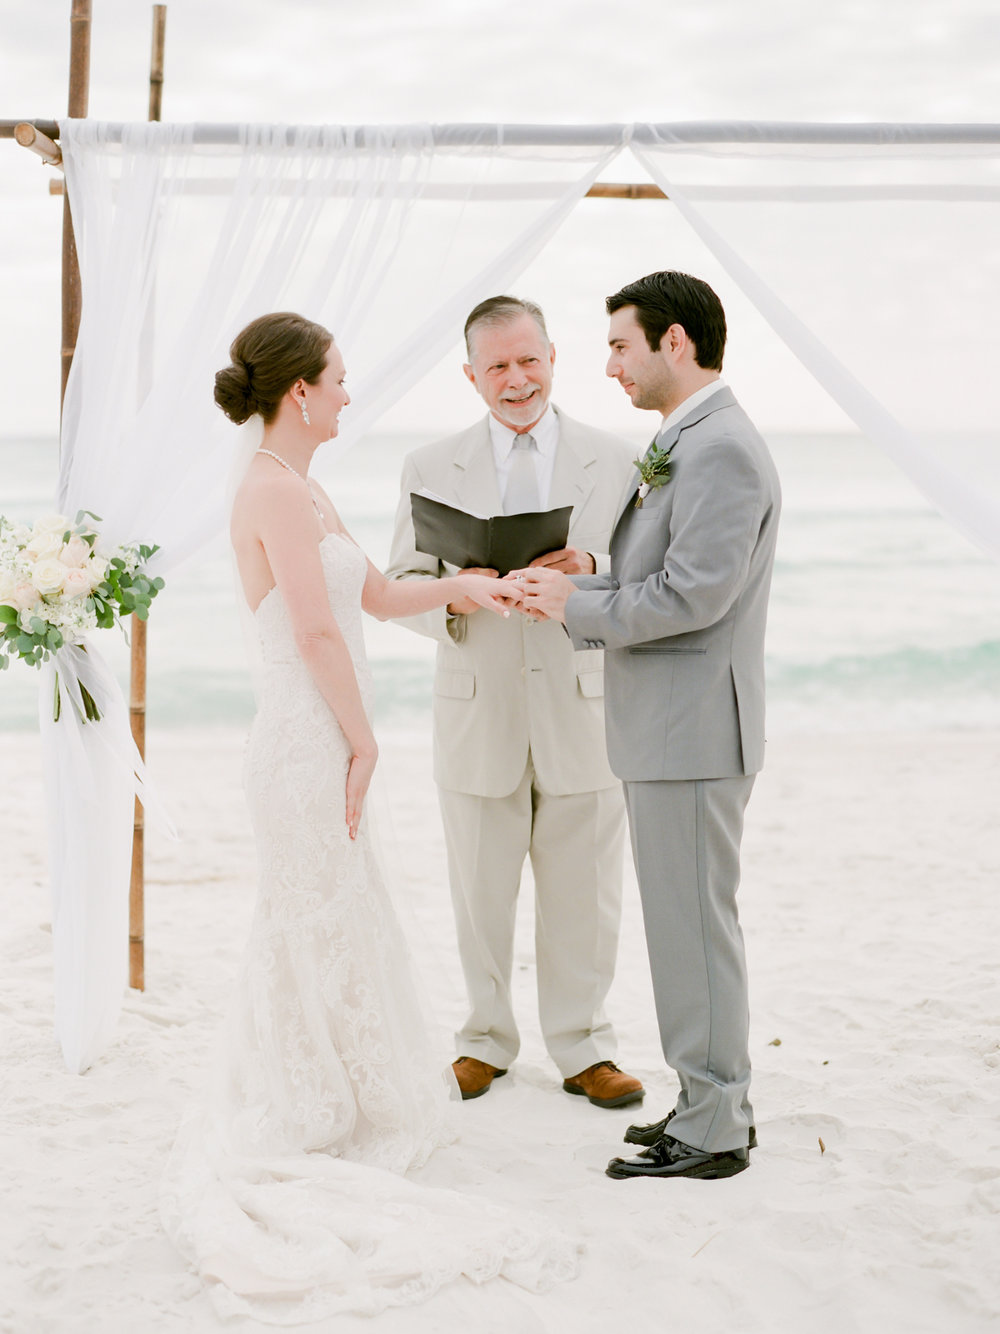 alysbeach-weddings-floralsbythesea-kayliebpoplinphotography